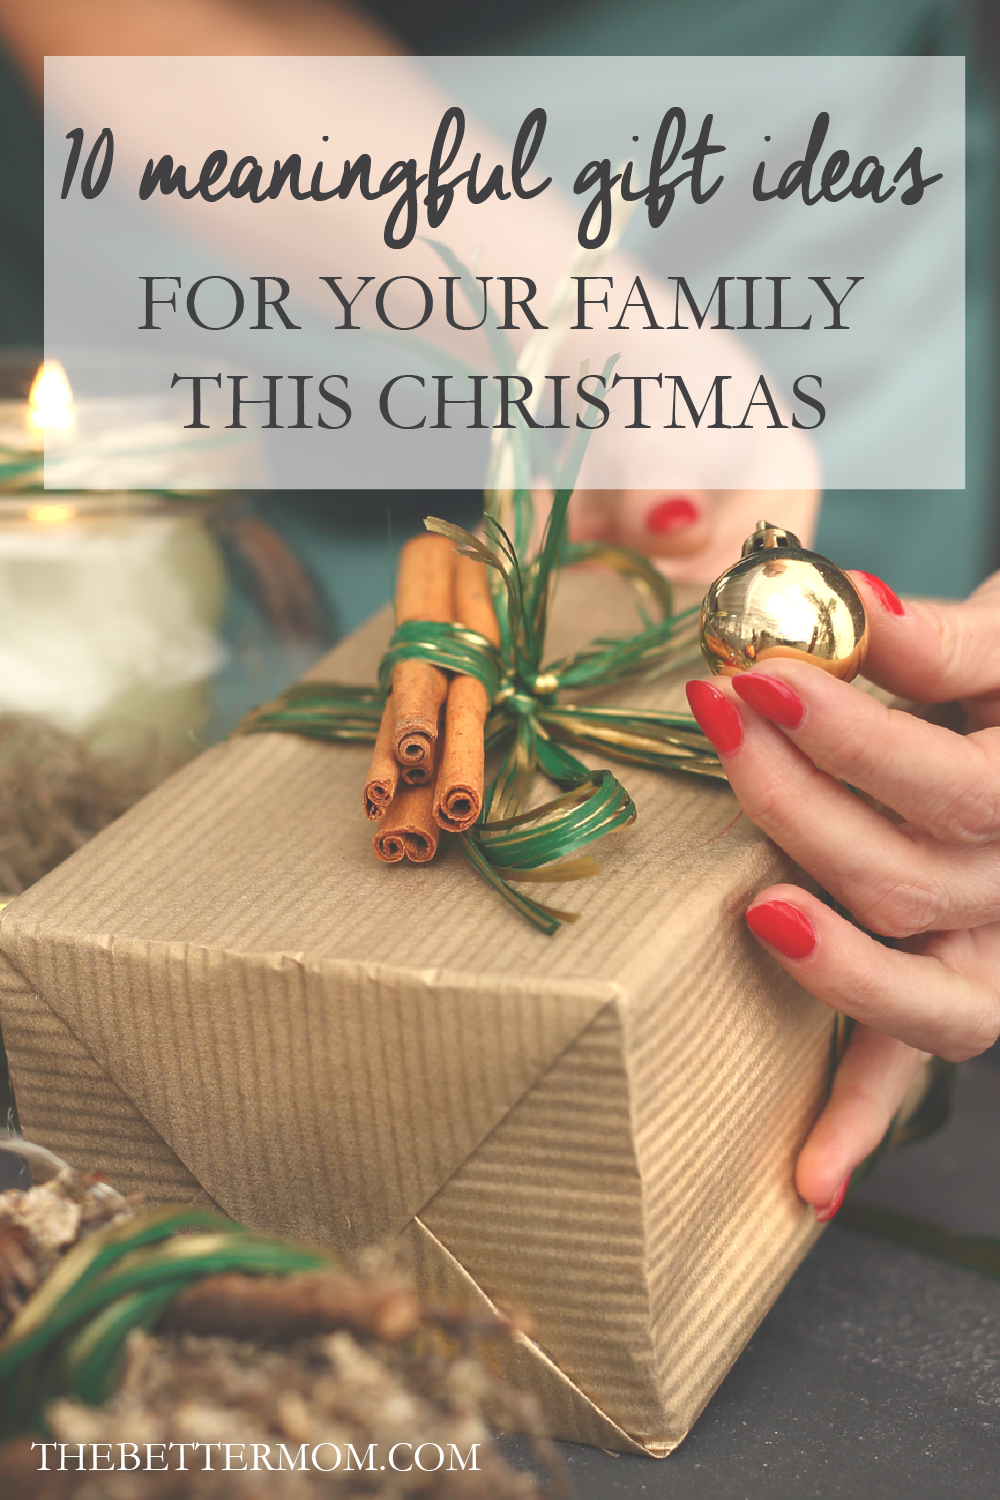 10 Meaningful Gift Ideas for Your Family this Christmas — the Better Mom